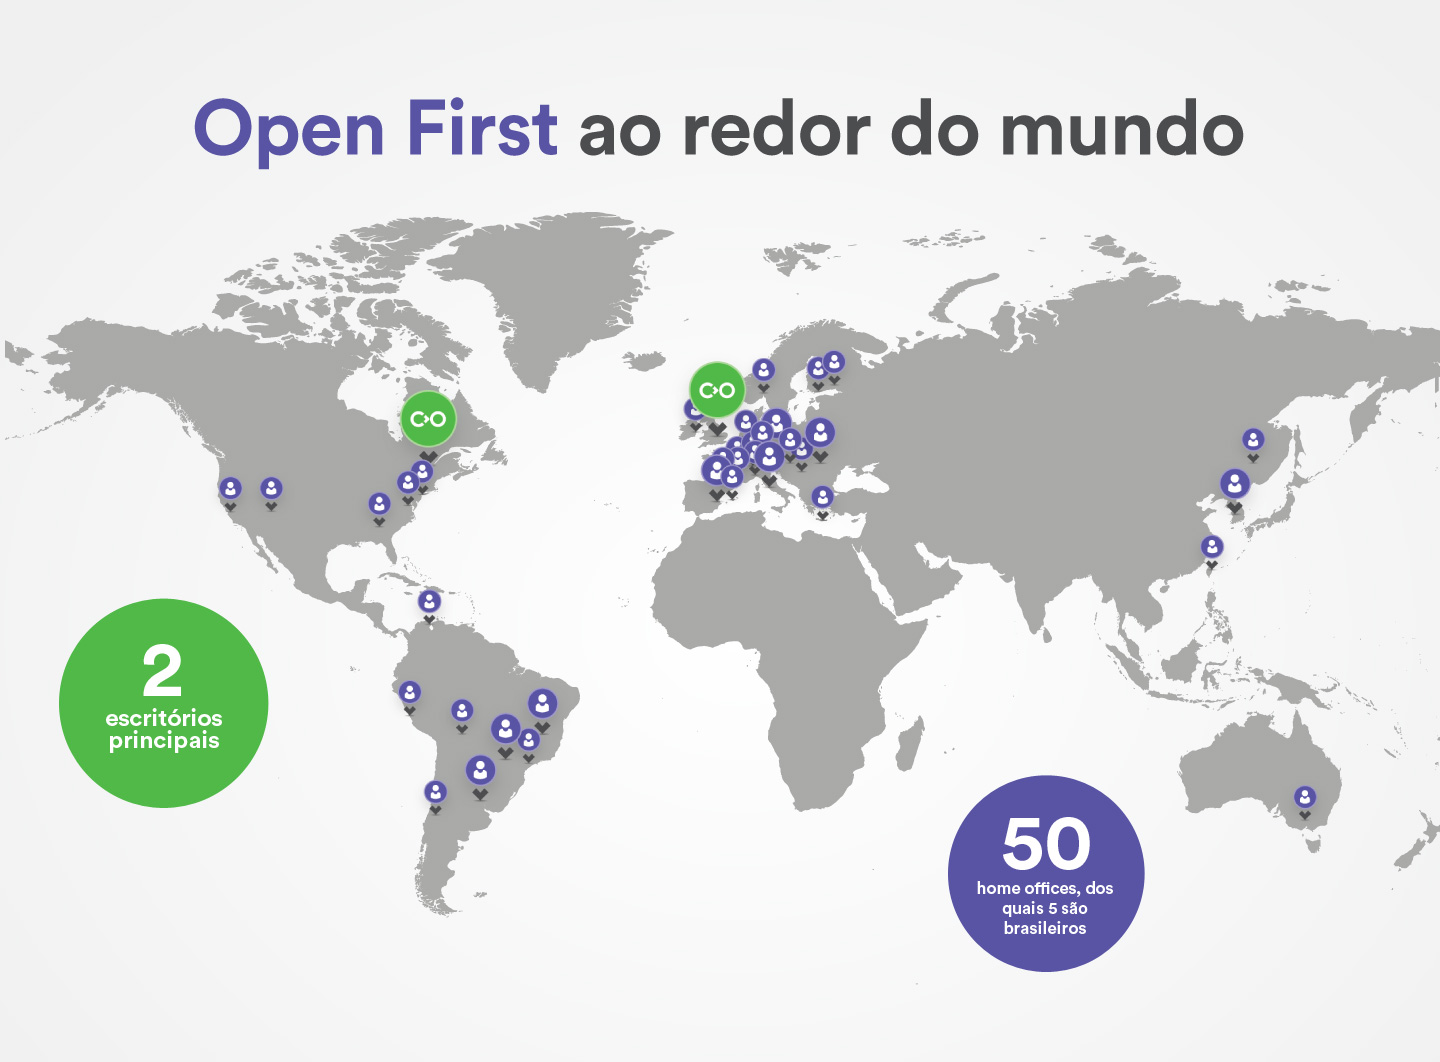 Open First ao redor do mundo